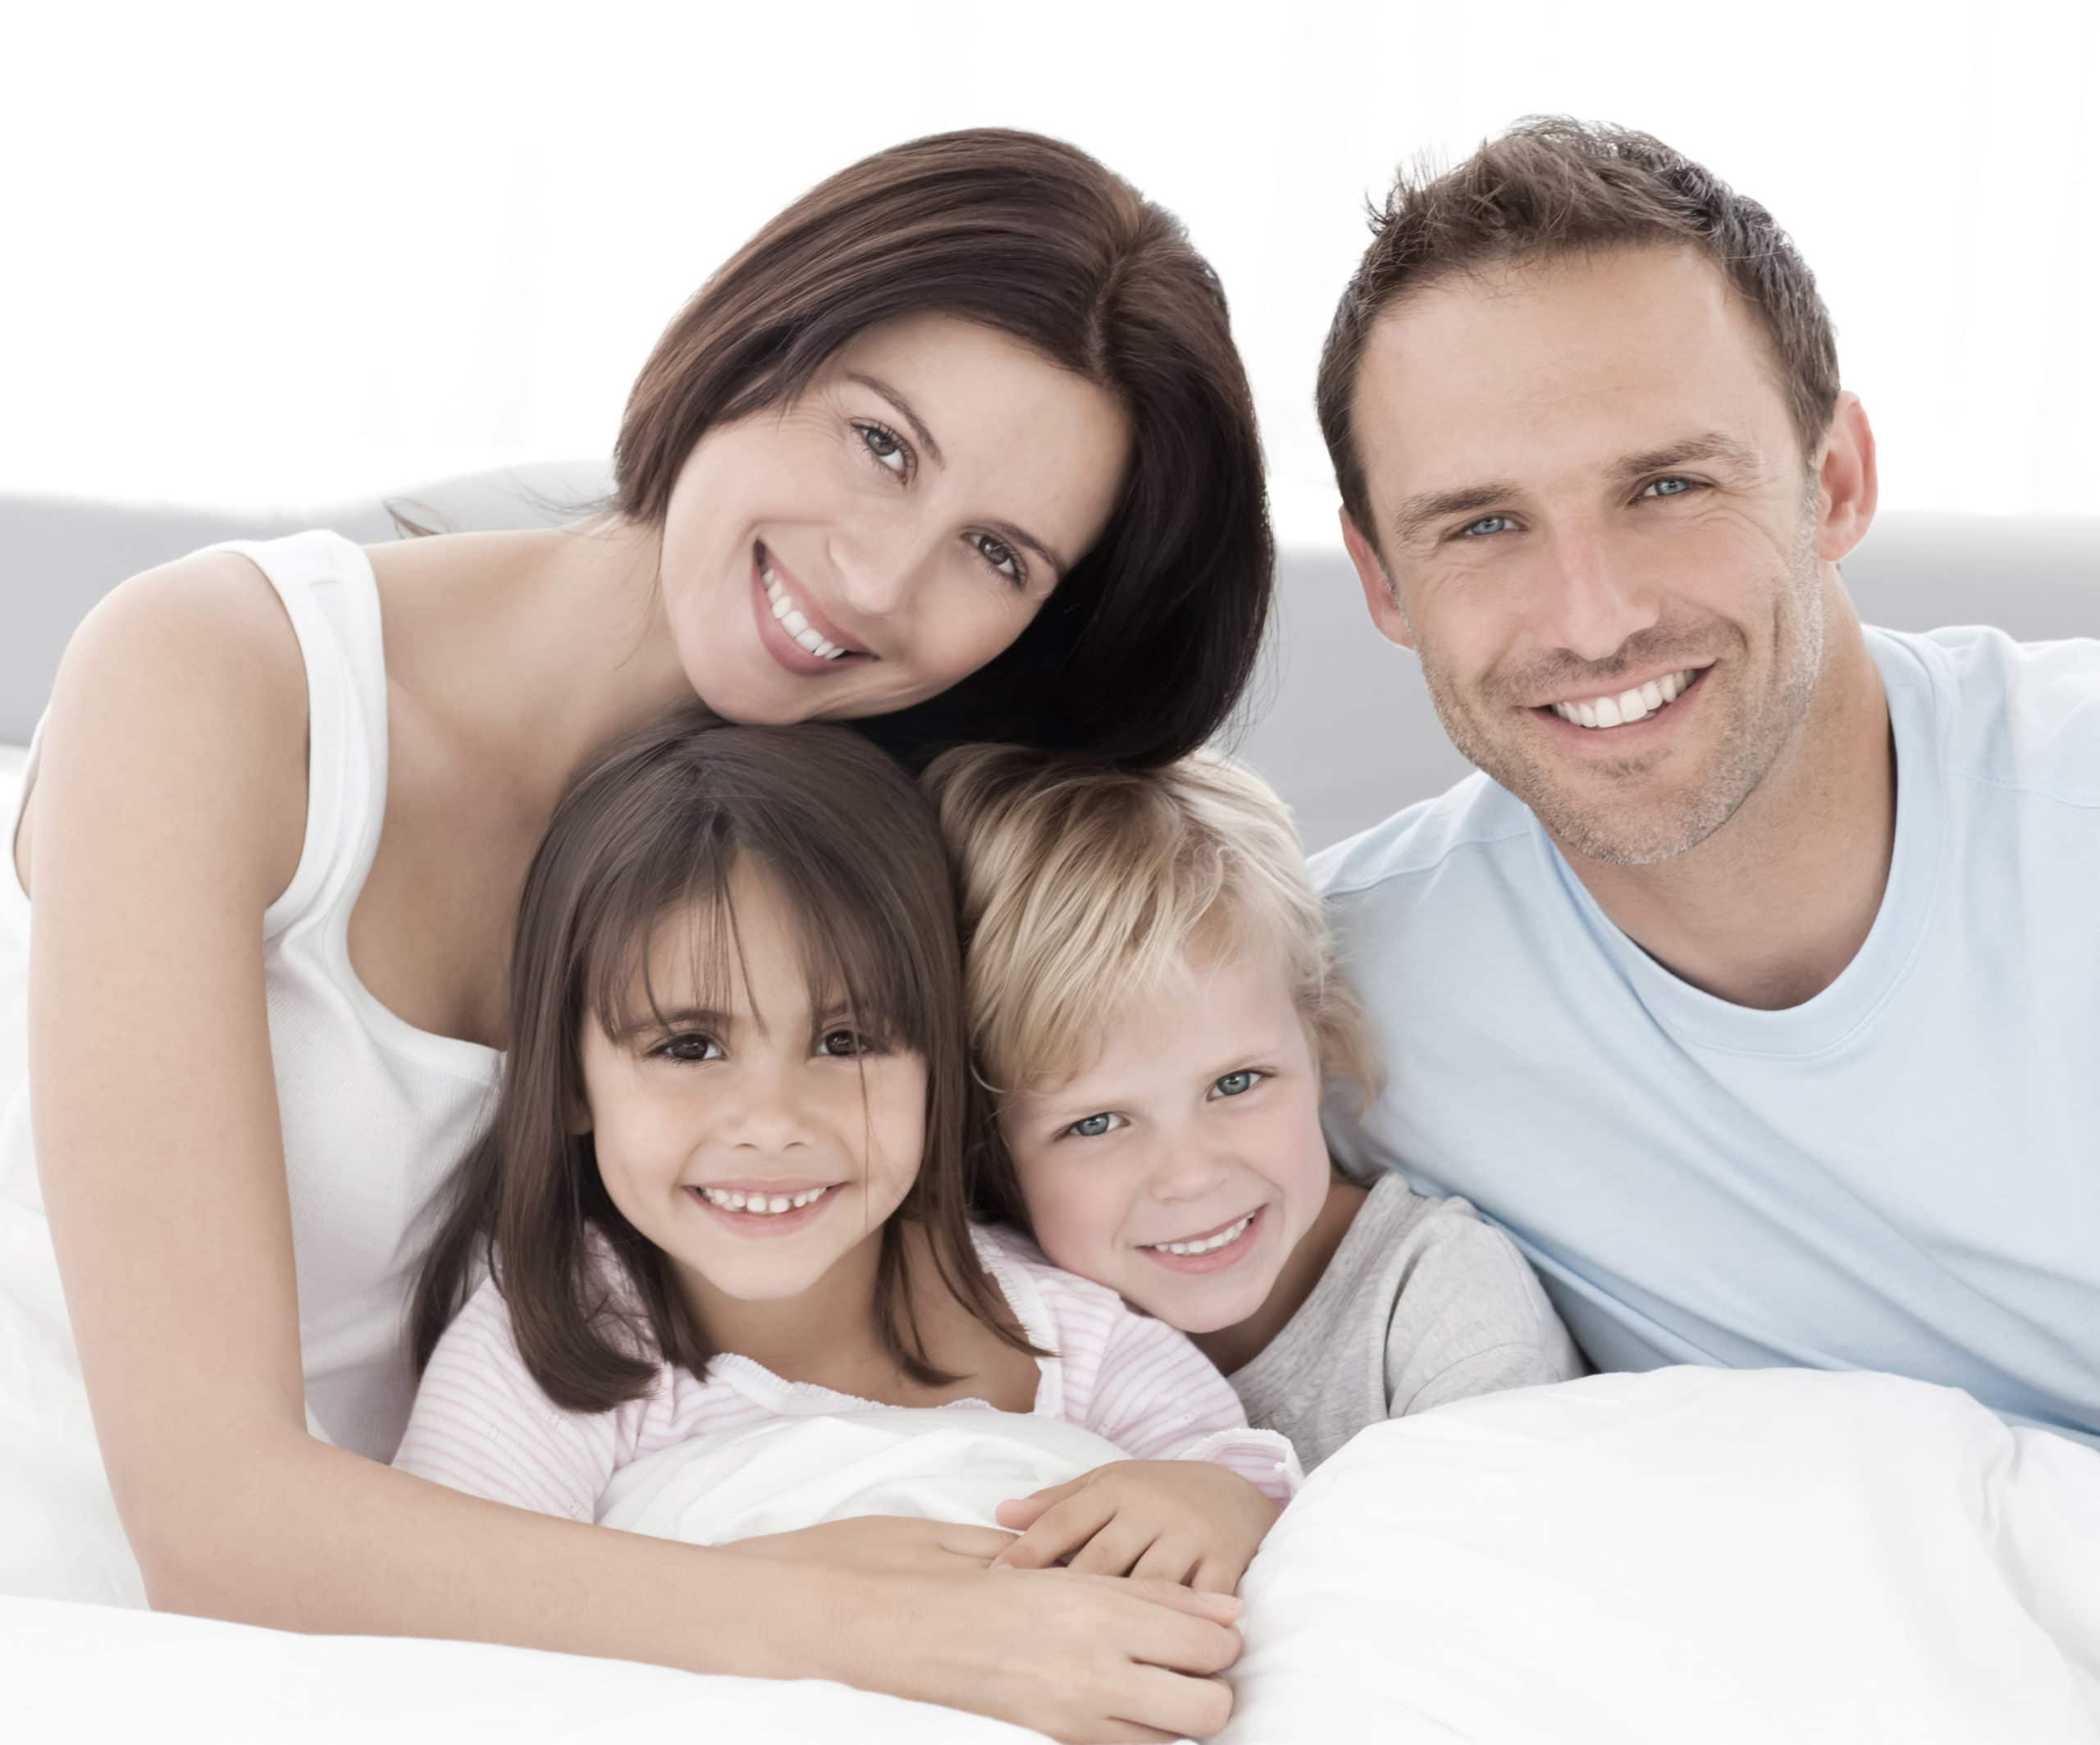 Preventive Dentistry For the Family